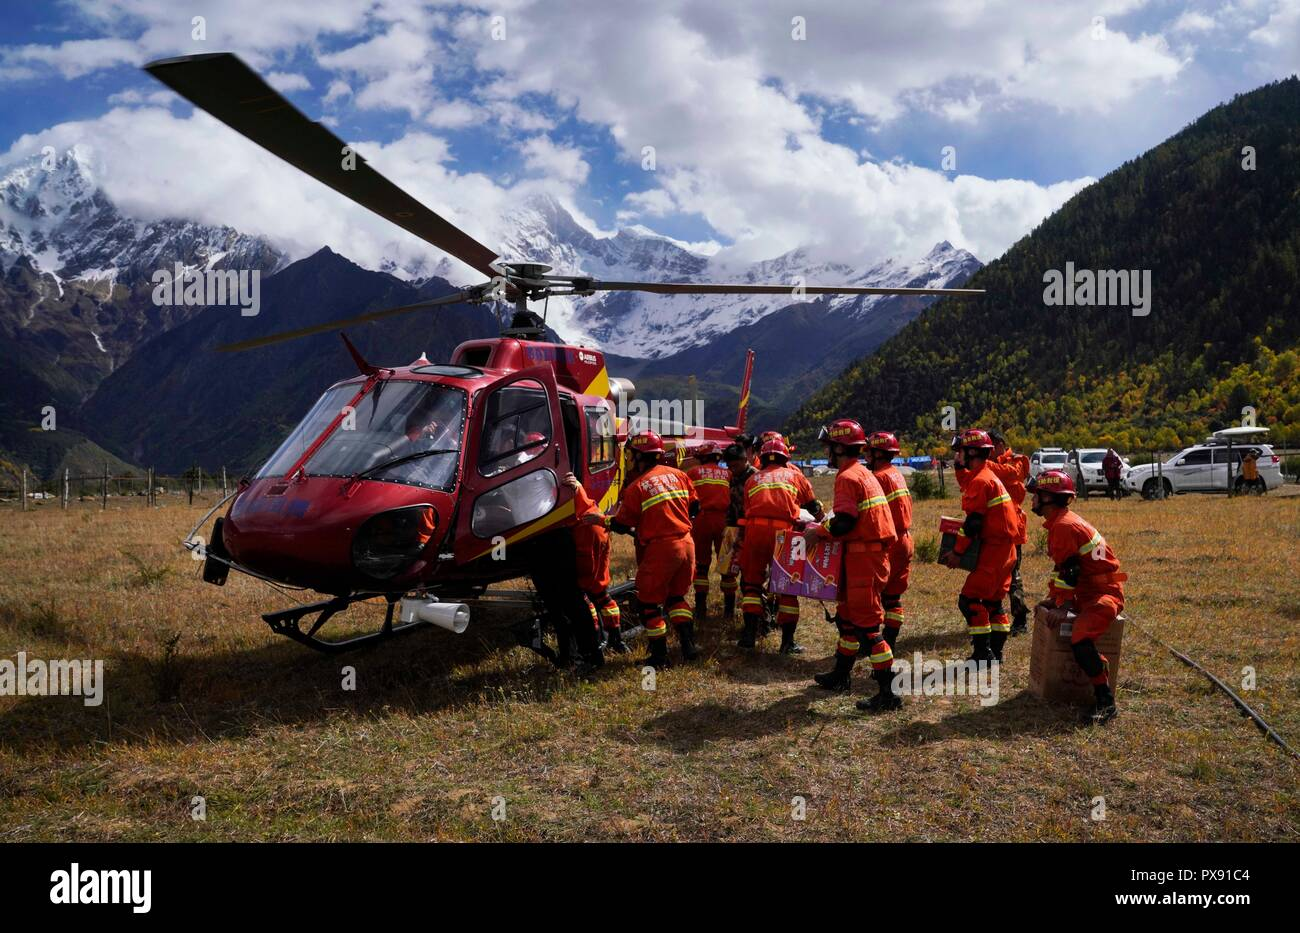 Menling, China's Tibet Autonomous Region. 20th Oct, 2018. Rescuers load a helicopter with relief materials for the lanslide-caused barrier lake disaster area in Menling County, southwest China's Tibet Autonomous Region, on Oct. 20, 2018. A helicopter from Xilin Fengteng General Aviation Co., Ltd. took part in the disaster relief to transport relief materials. The barrier lake was formed near a village in Menling County after landslides on Wednesday and Thursday blocked the Yarlung Tsangpo River's waterway. Credit: Purbu Zhaxi/Xinhua/Alamy Live News - Stock Image